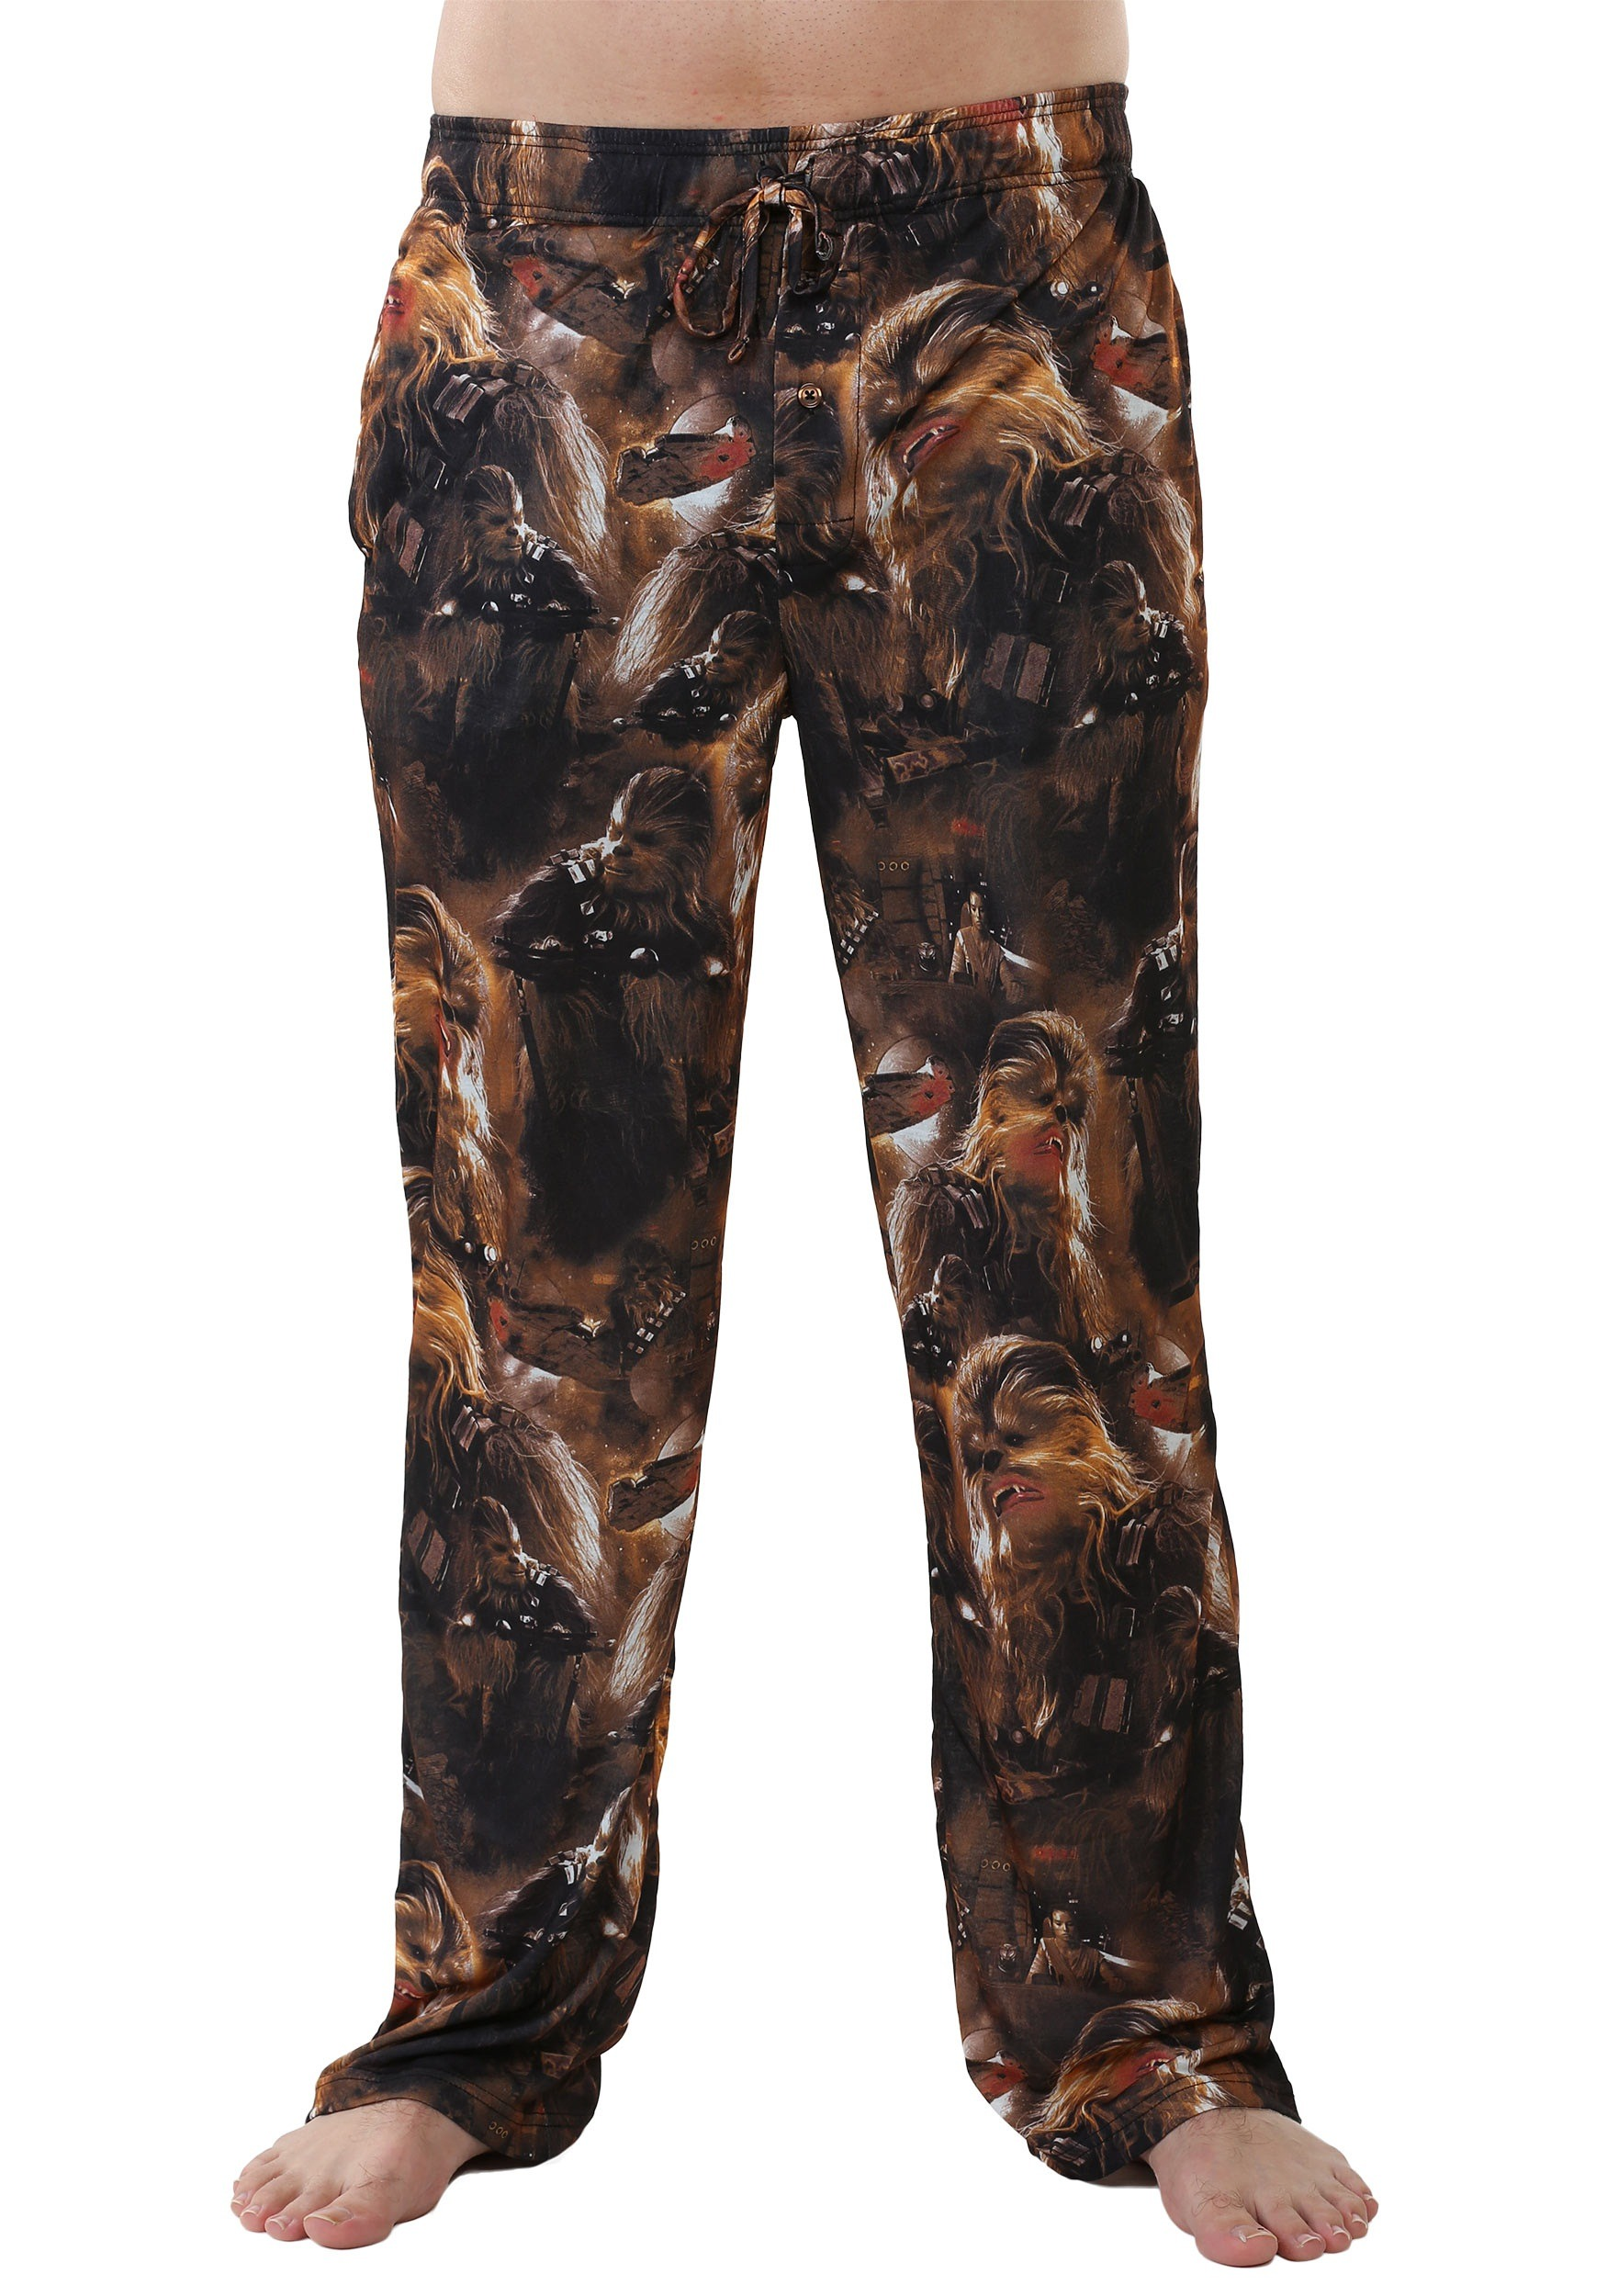 men's star wars lounge pants with chewie faces print